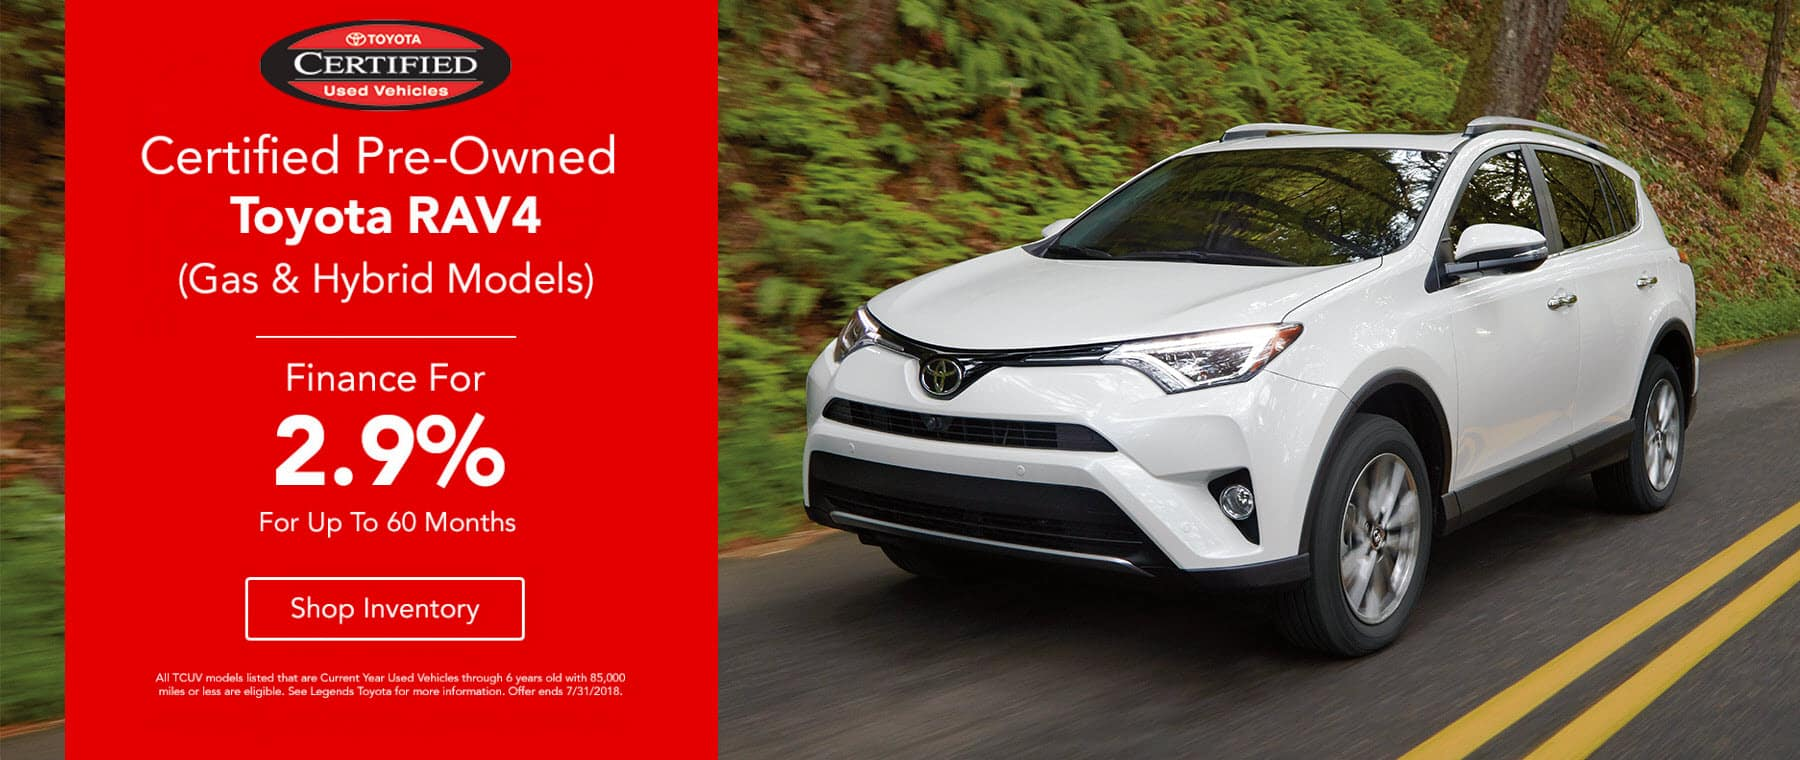 Certified Pre-Owned RAV4 Finance For 2.9% APR For Up To 60 Months